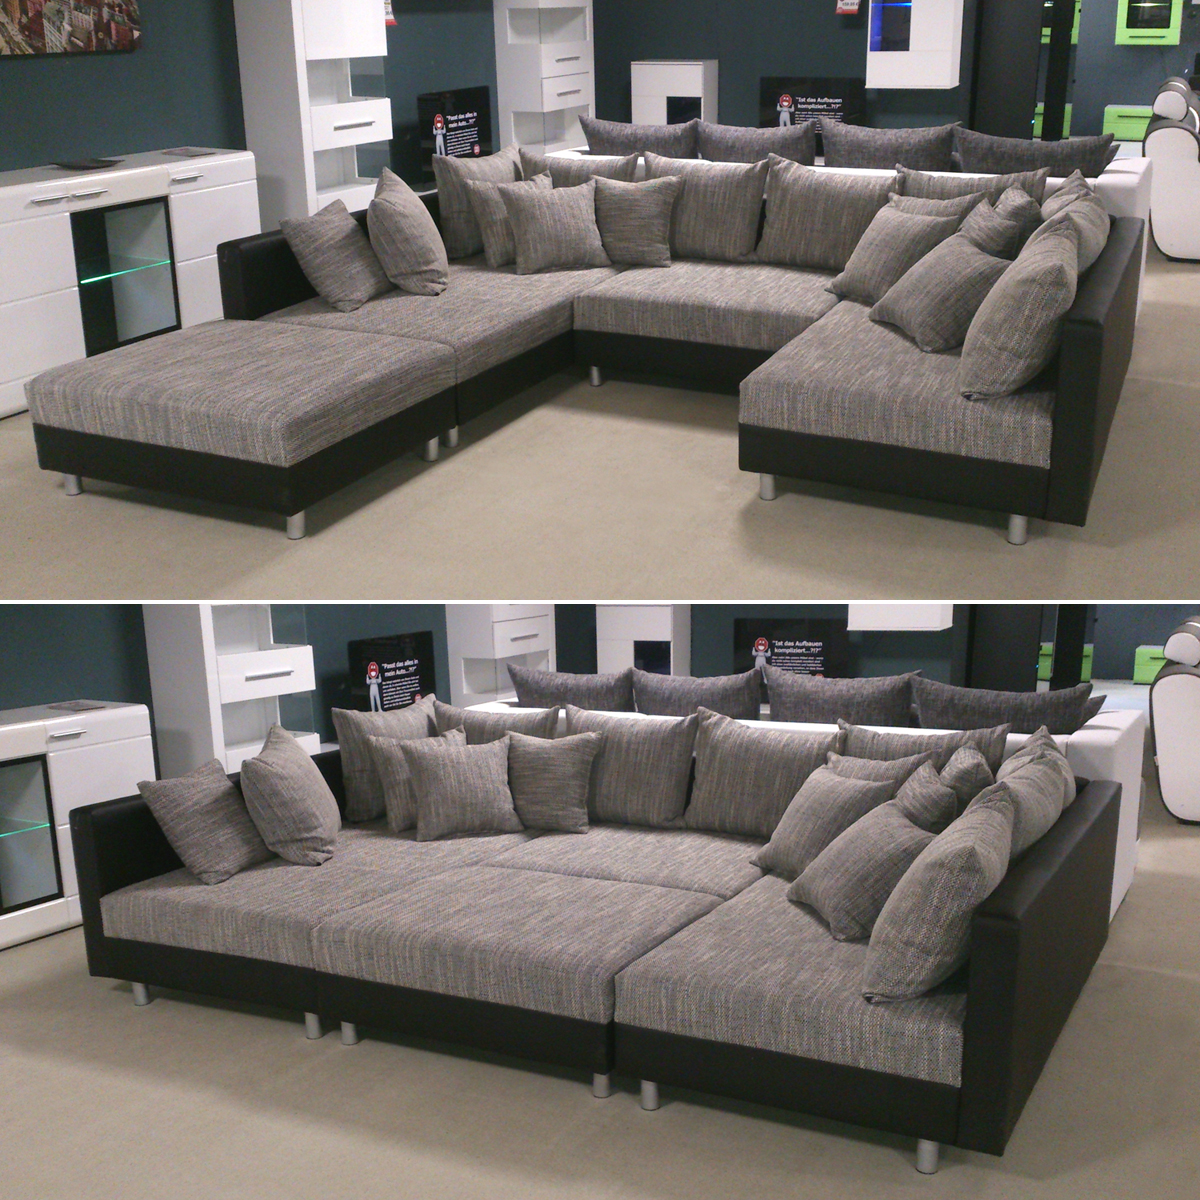 Xxl sofa u form design sectional sofa matera xxl with led for Ecksofa ebay kleinanzeigen